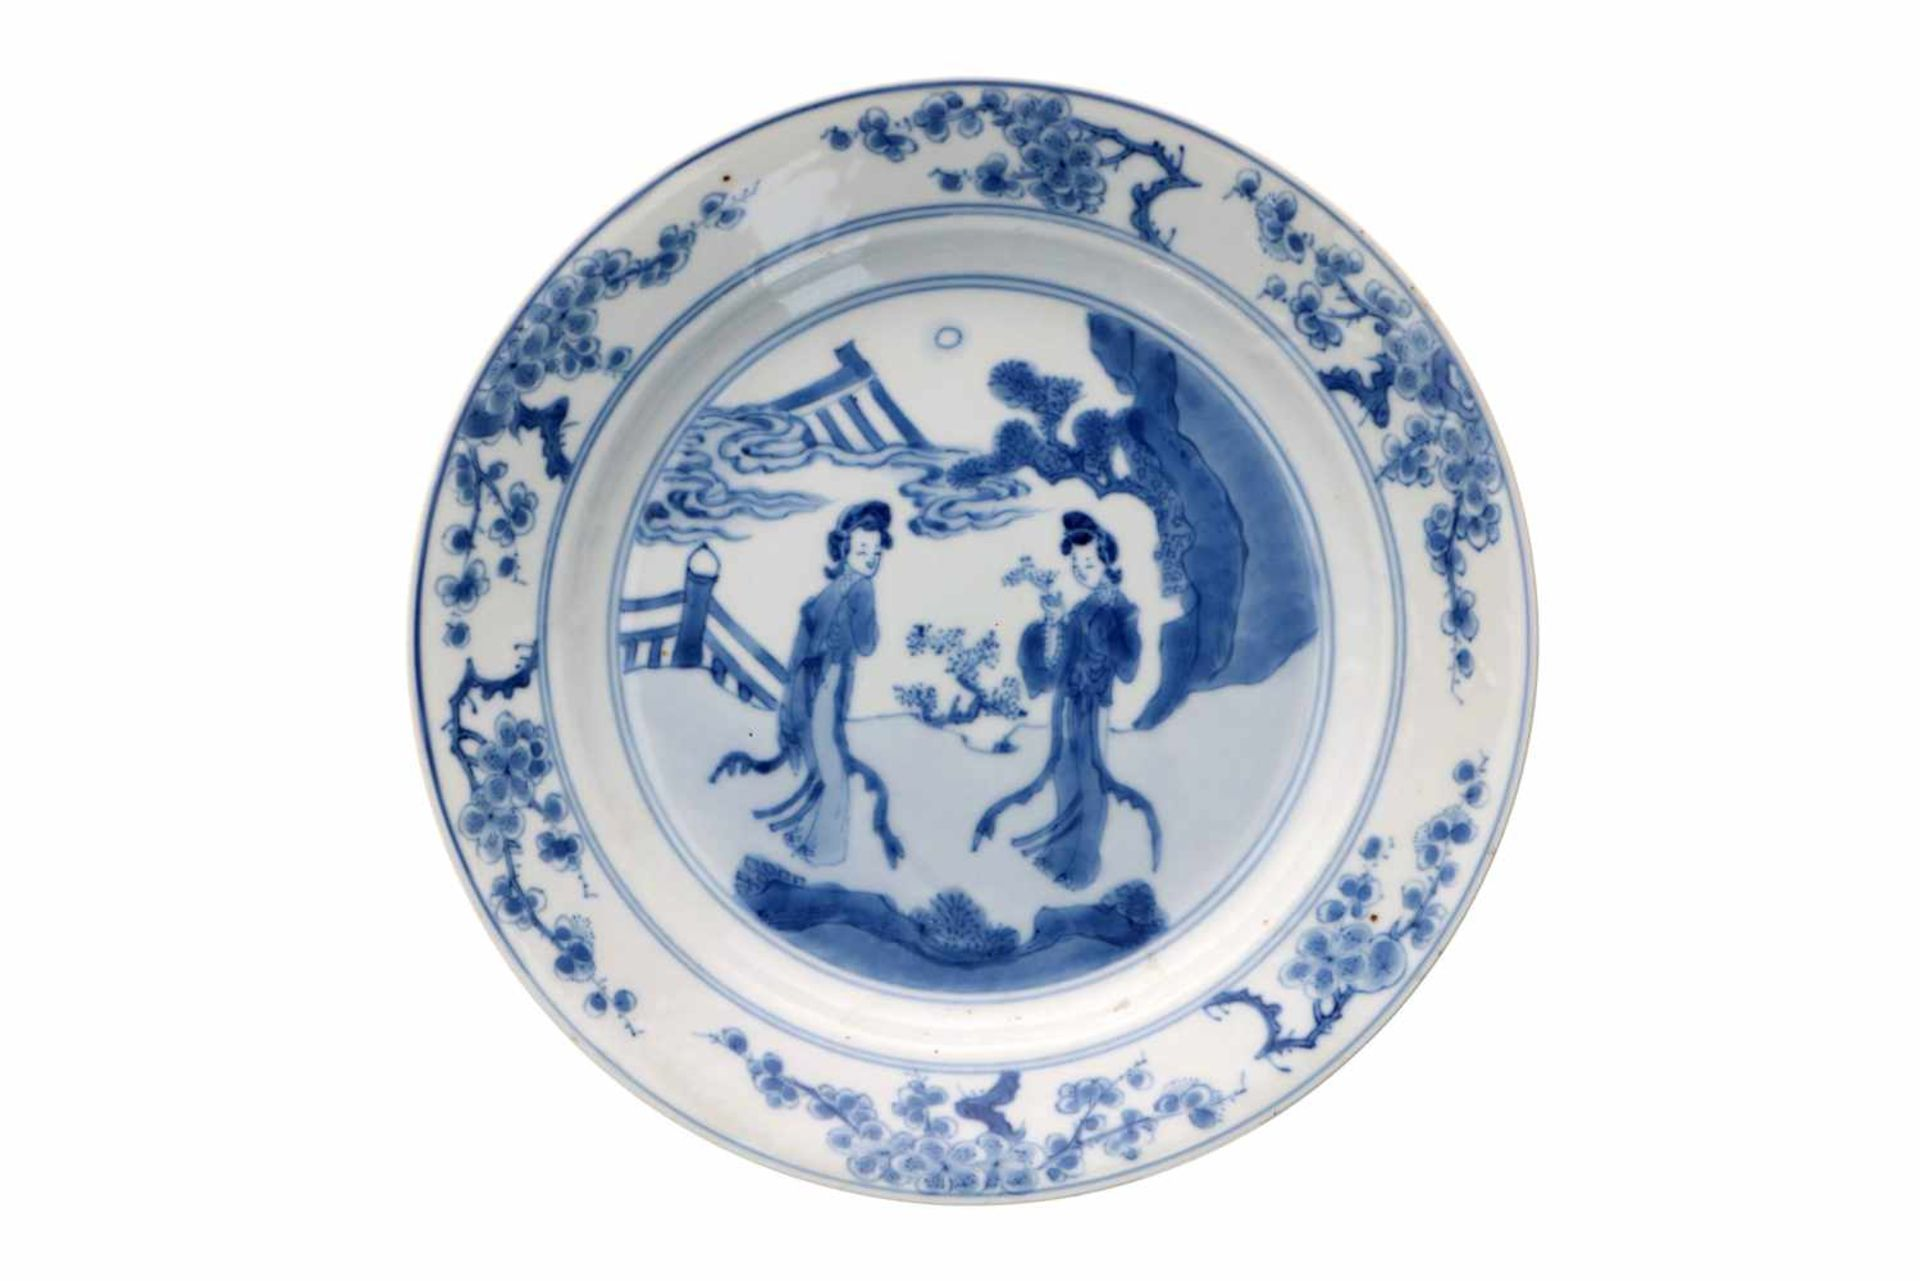 A blue and white porcelain deep dish, decorated with long Elizas in a garden and prunus flowers.